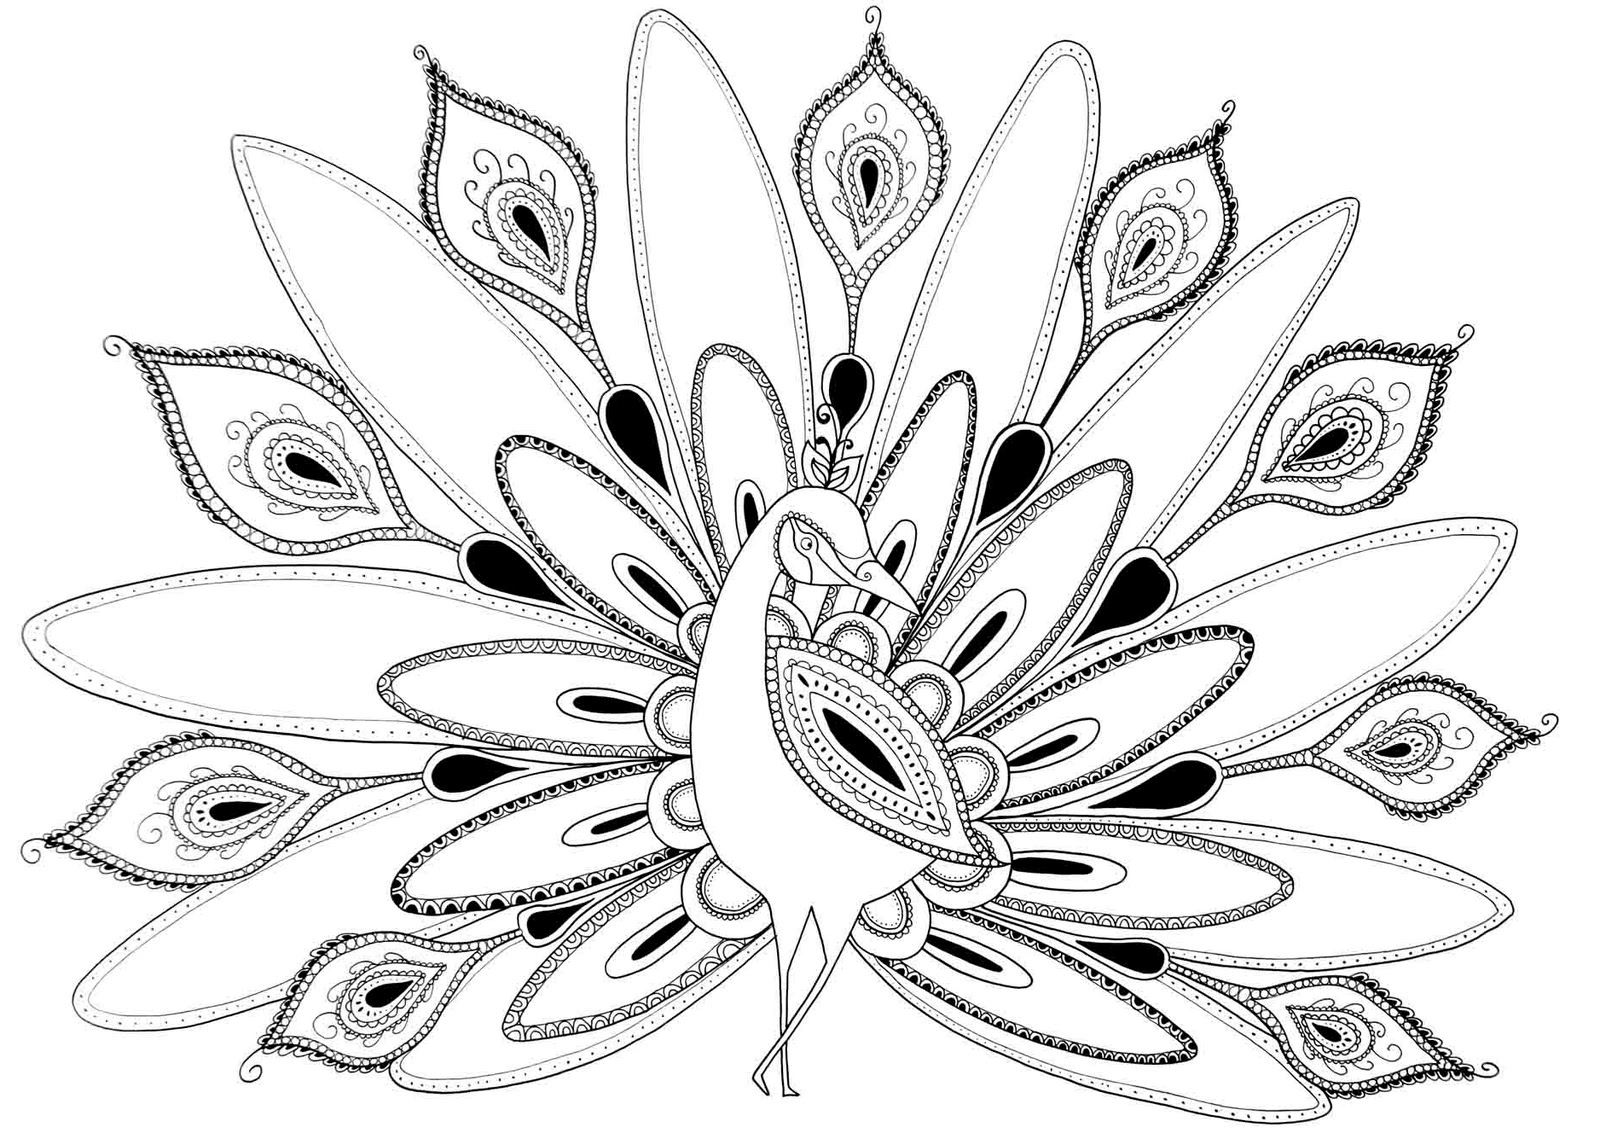 Drawn peacock coloring page Images Peacock 6 Peacocks Coloring